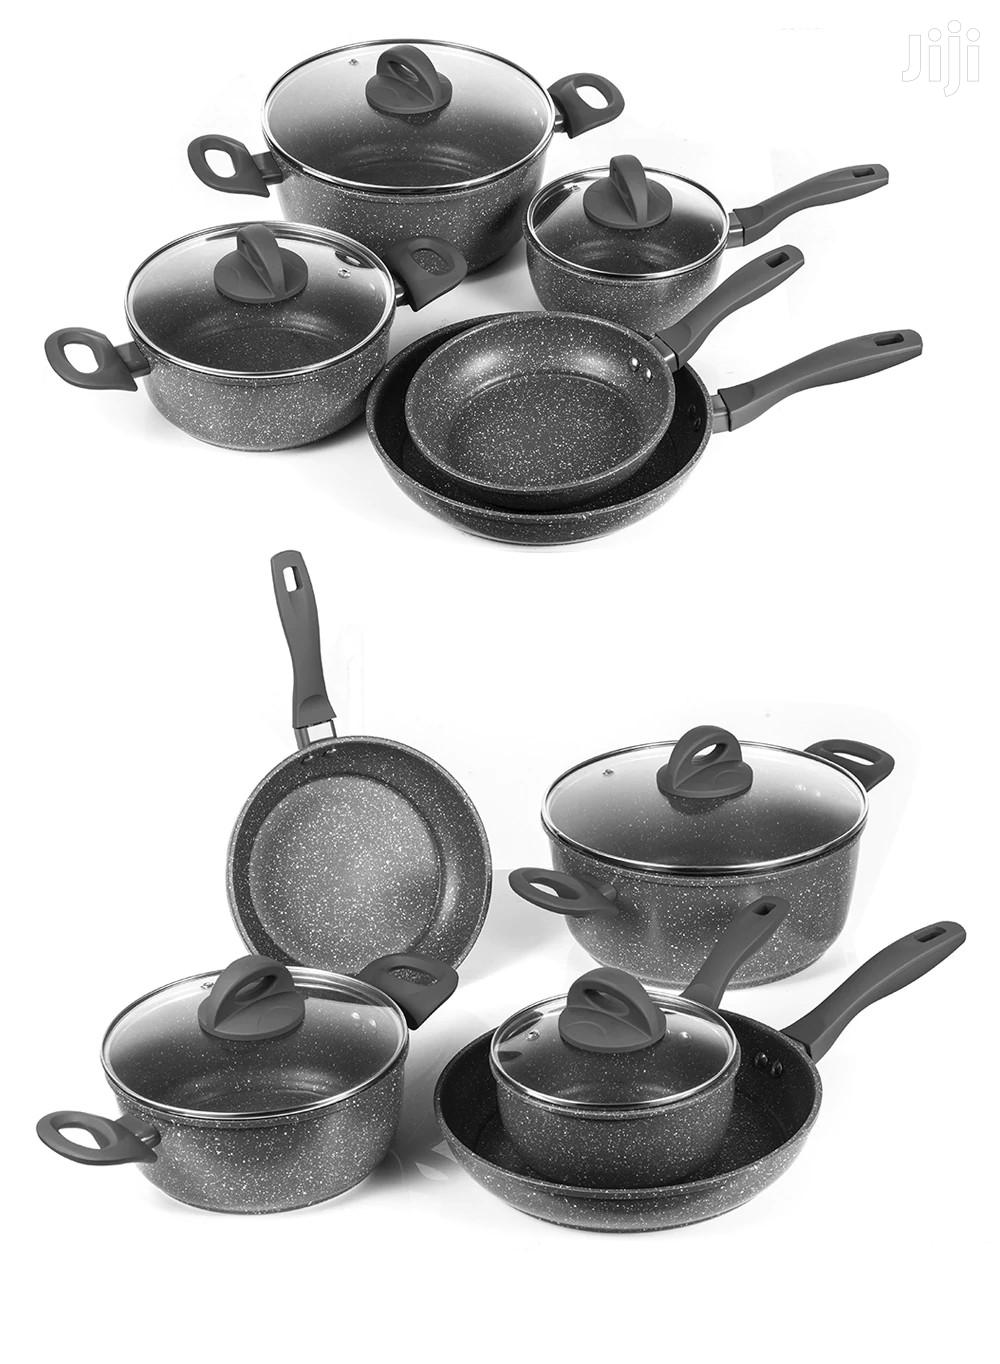 Archive: Stainless Pots And Pans